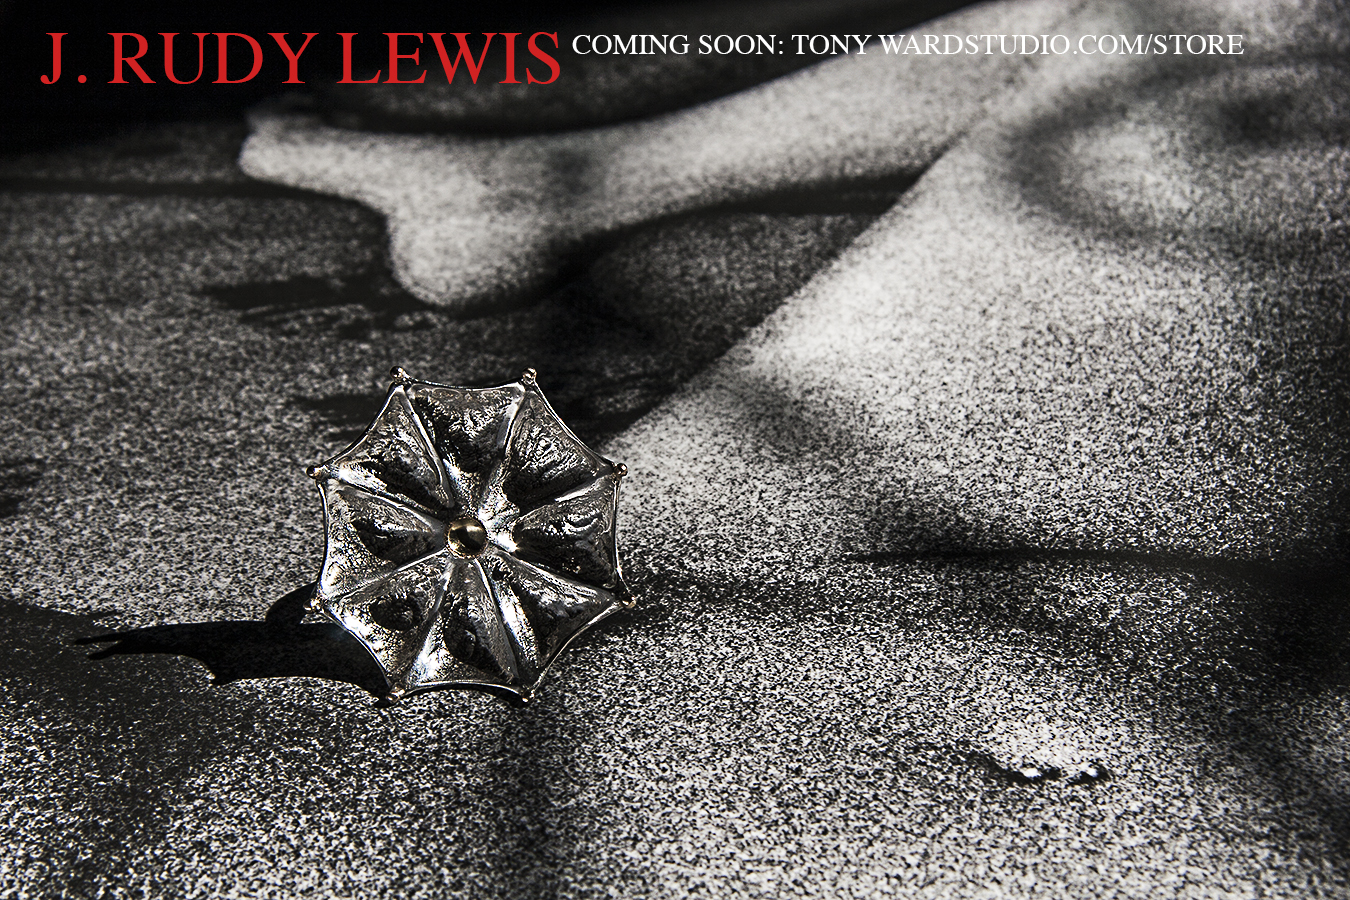 J_Rudy_Lewis_jewelry_jeweler_sterling_silver_tony_ward_studio_store_online_sales_fashion_precious_stones_rings_sexy_erotica